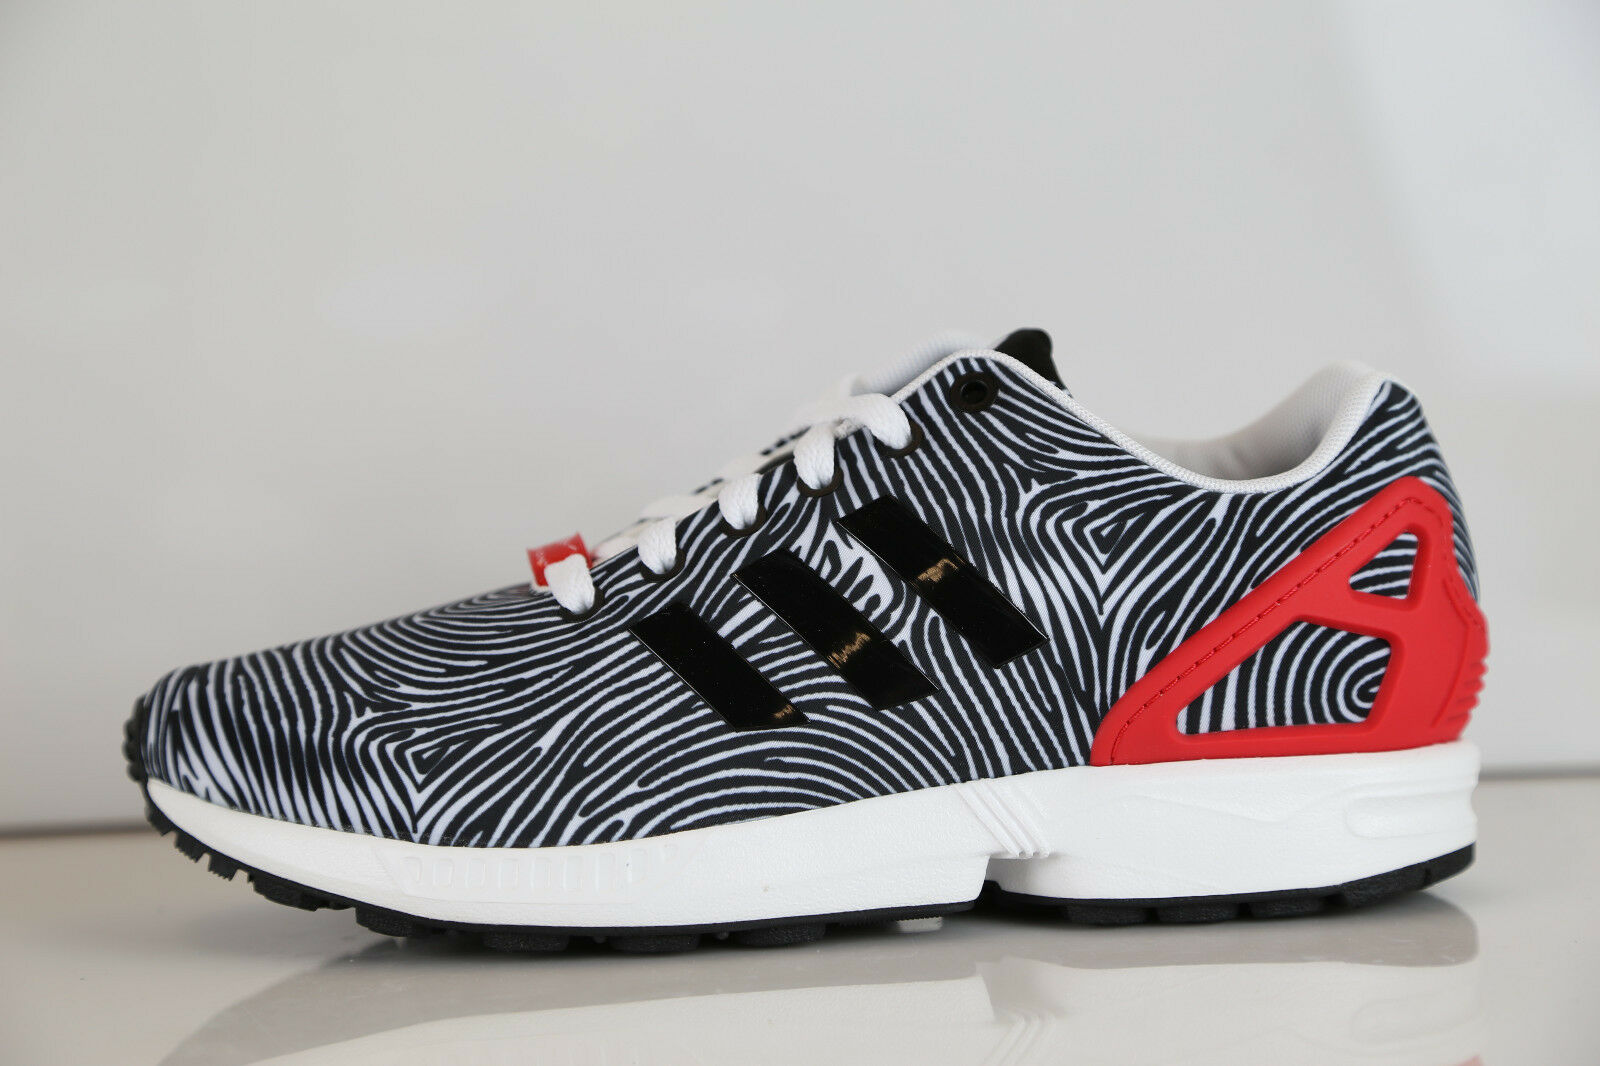 Adidas ZX Flux Zebra Thumbprint White Tomato B27457 8-12 originals all star boos Scarpe classiche da uomo